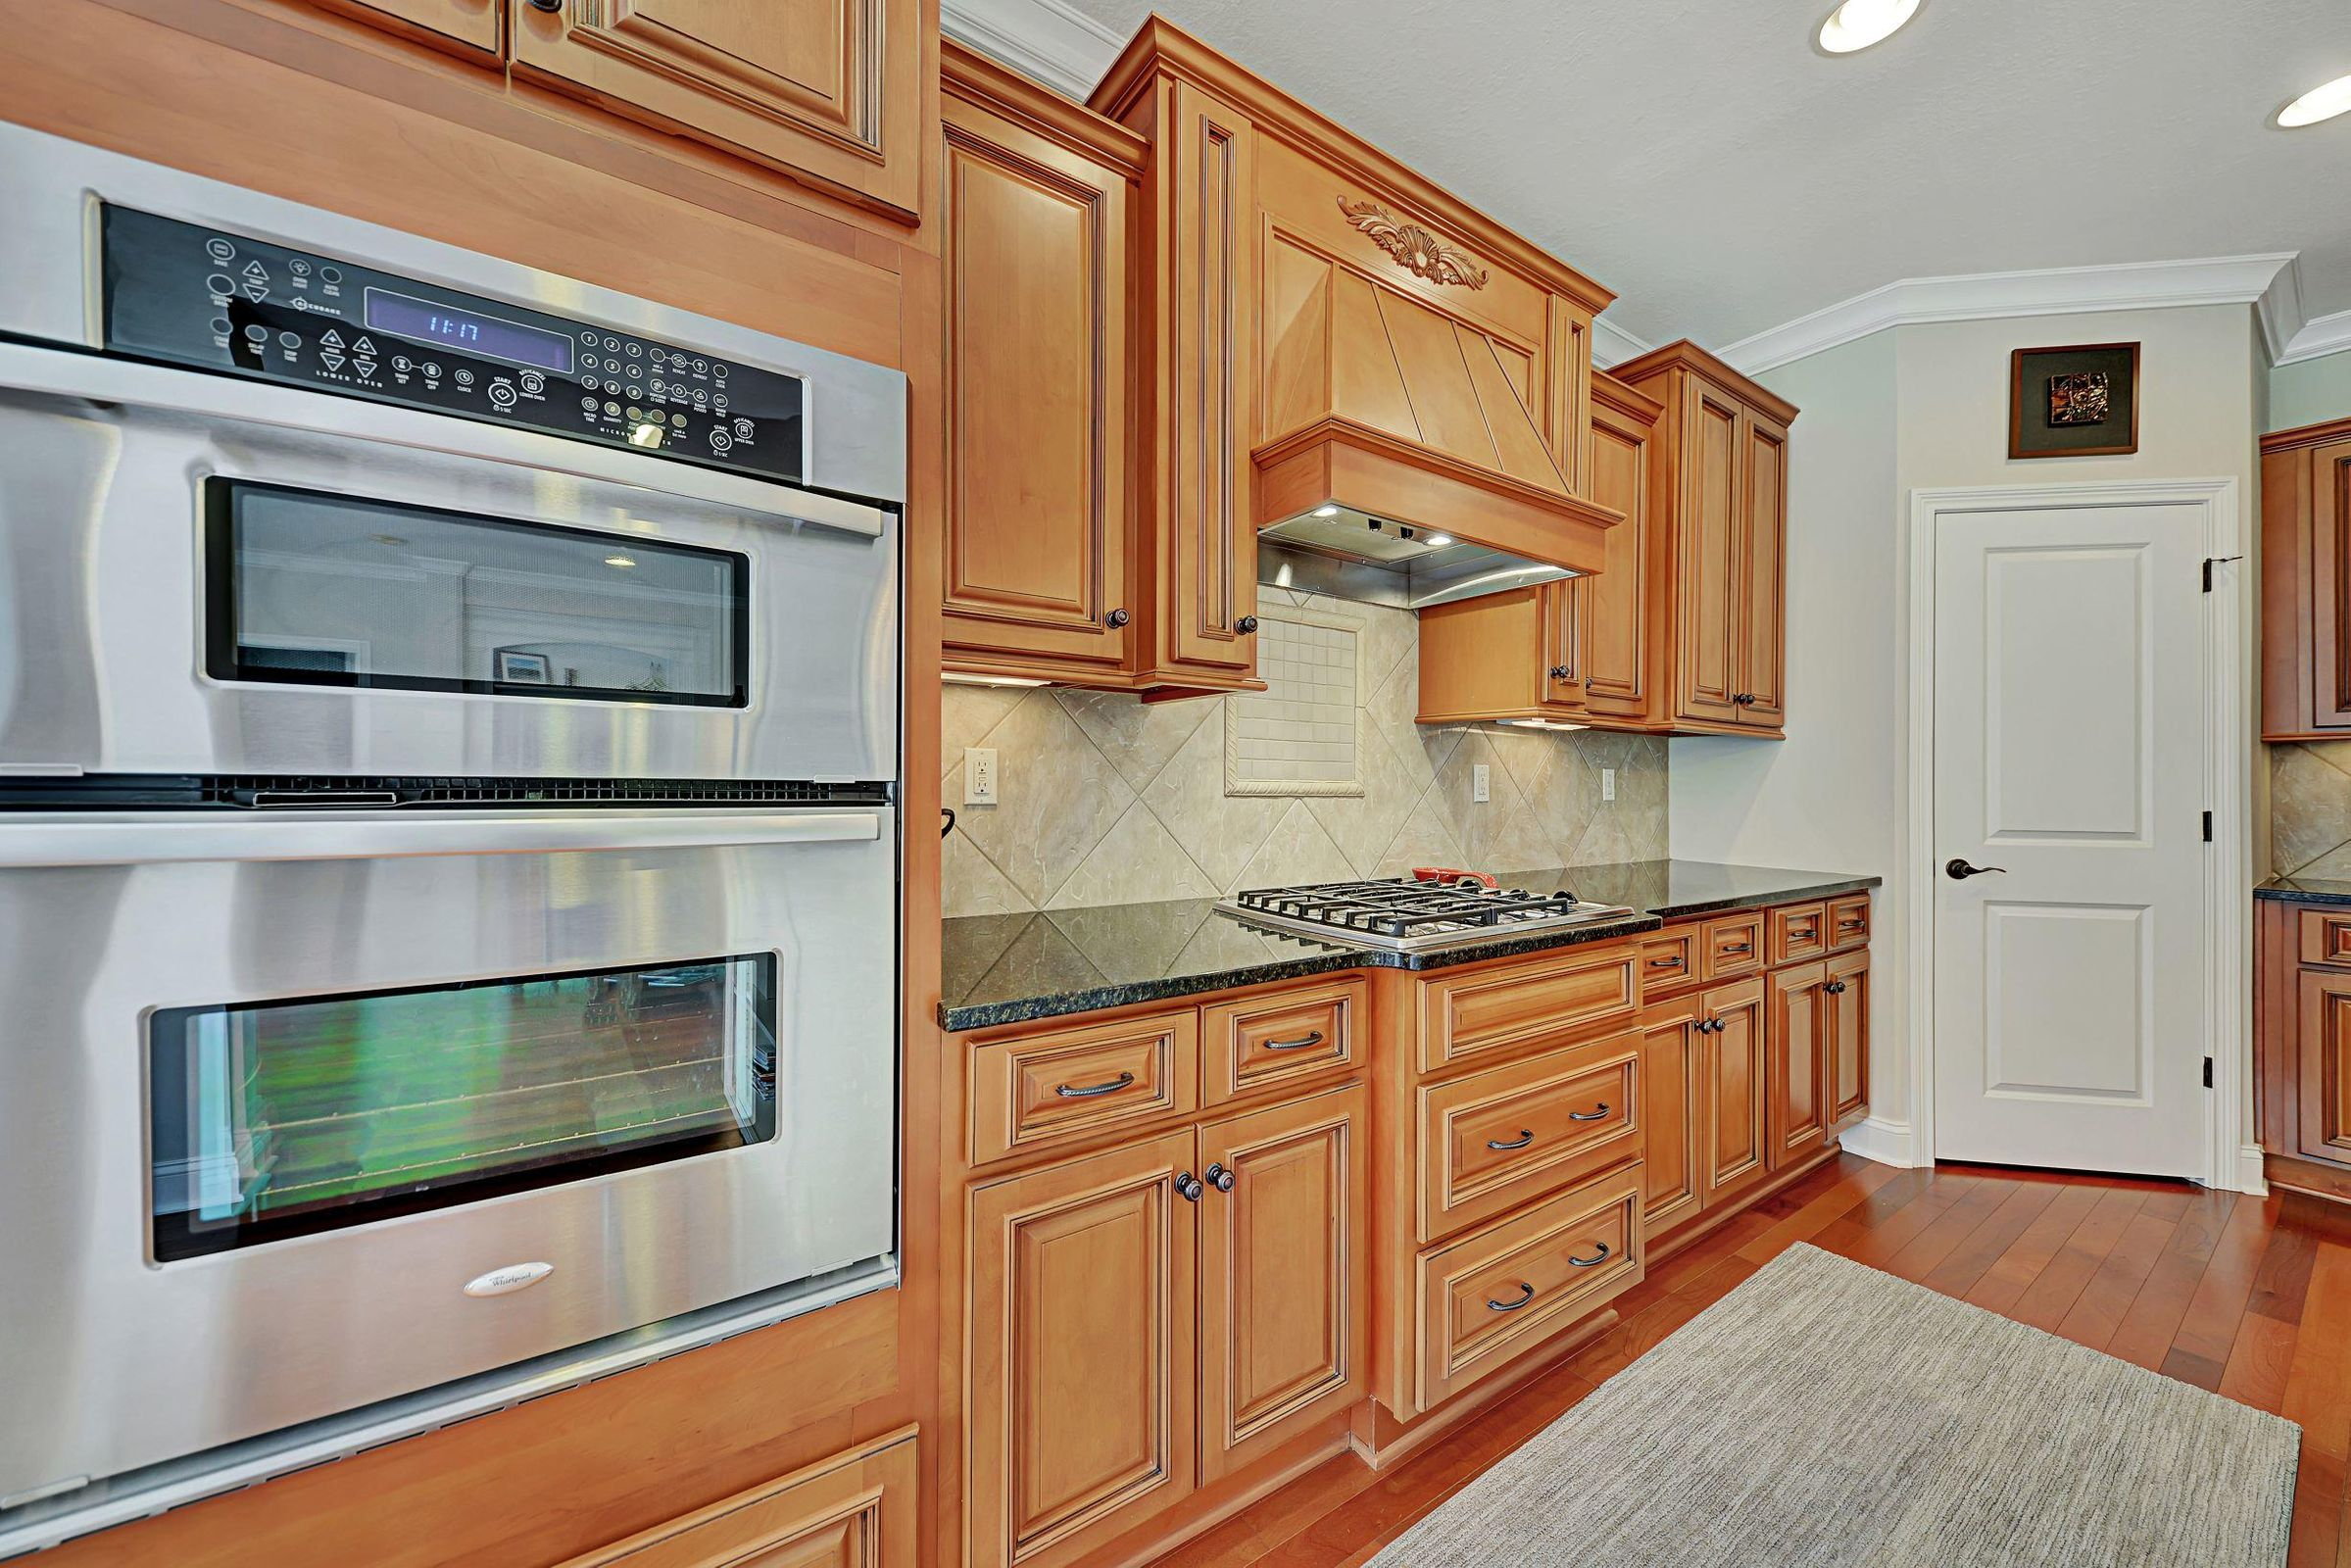 Built-in oven, microwave.Gas cooktop.